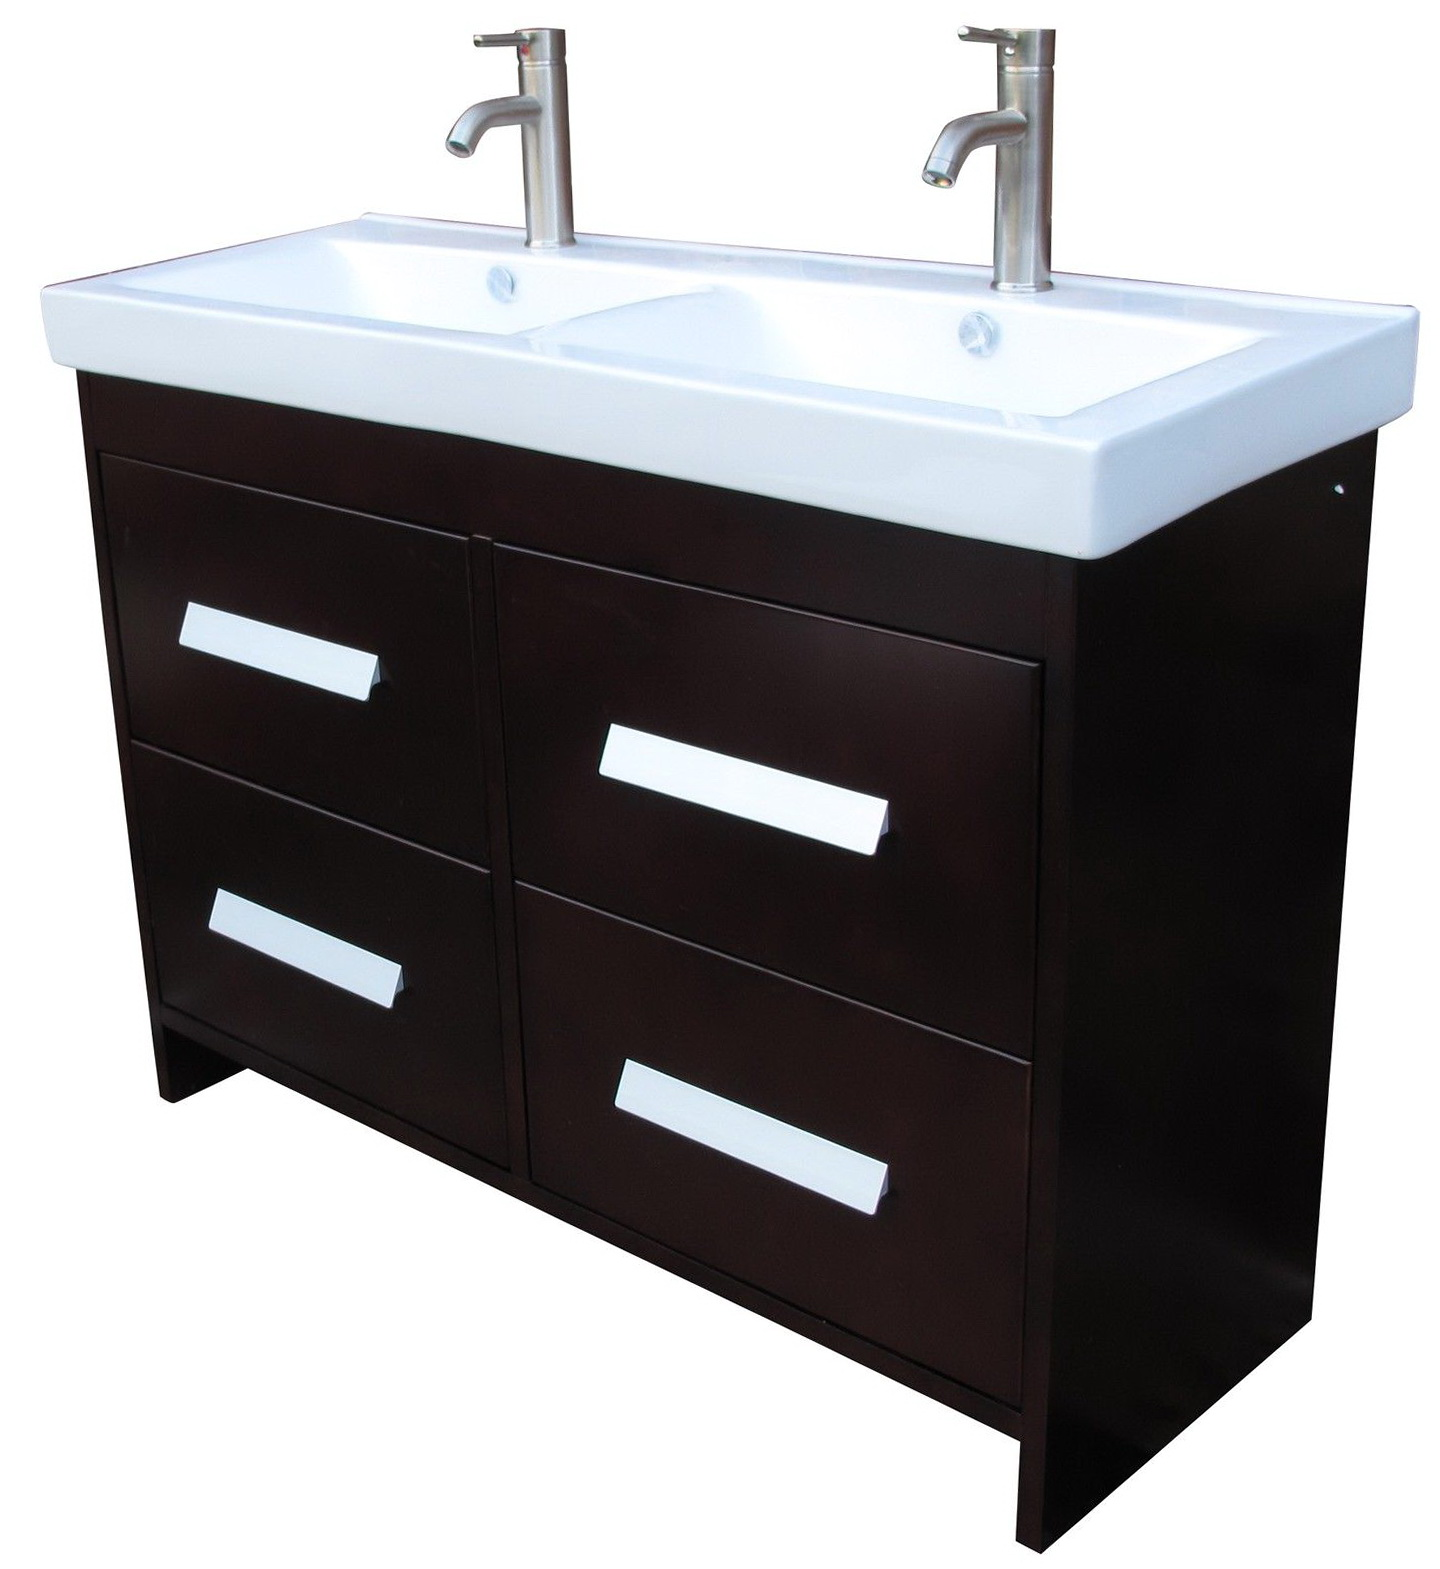 48 Inch Double Sink Bathroom Vanity